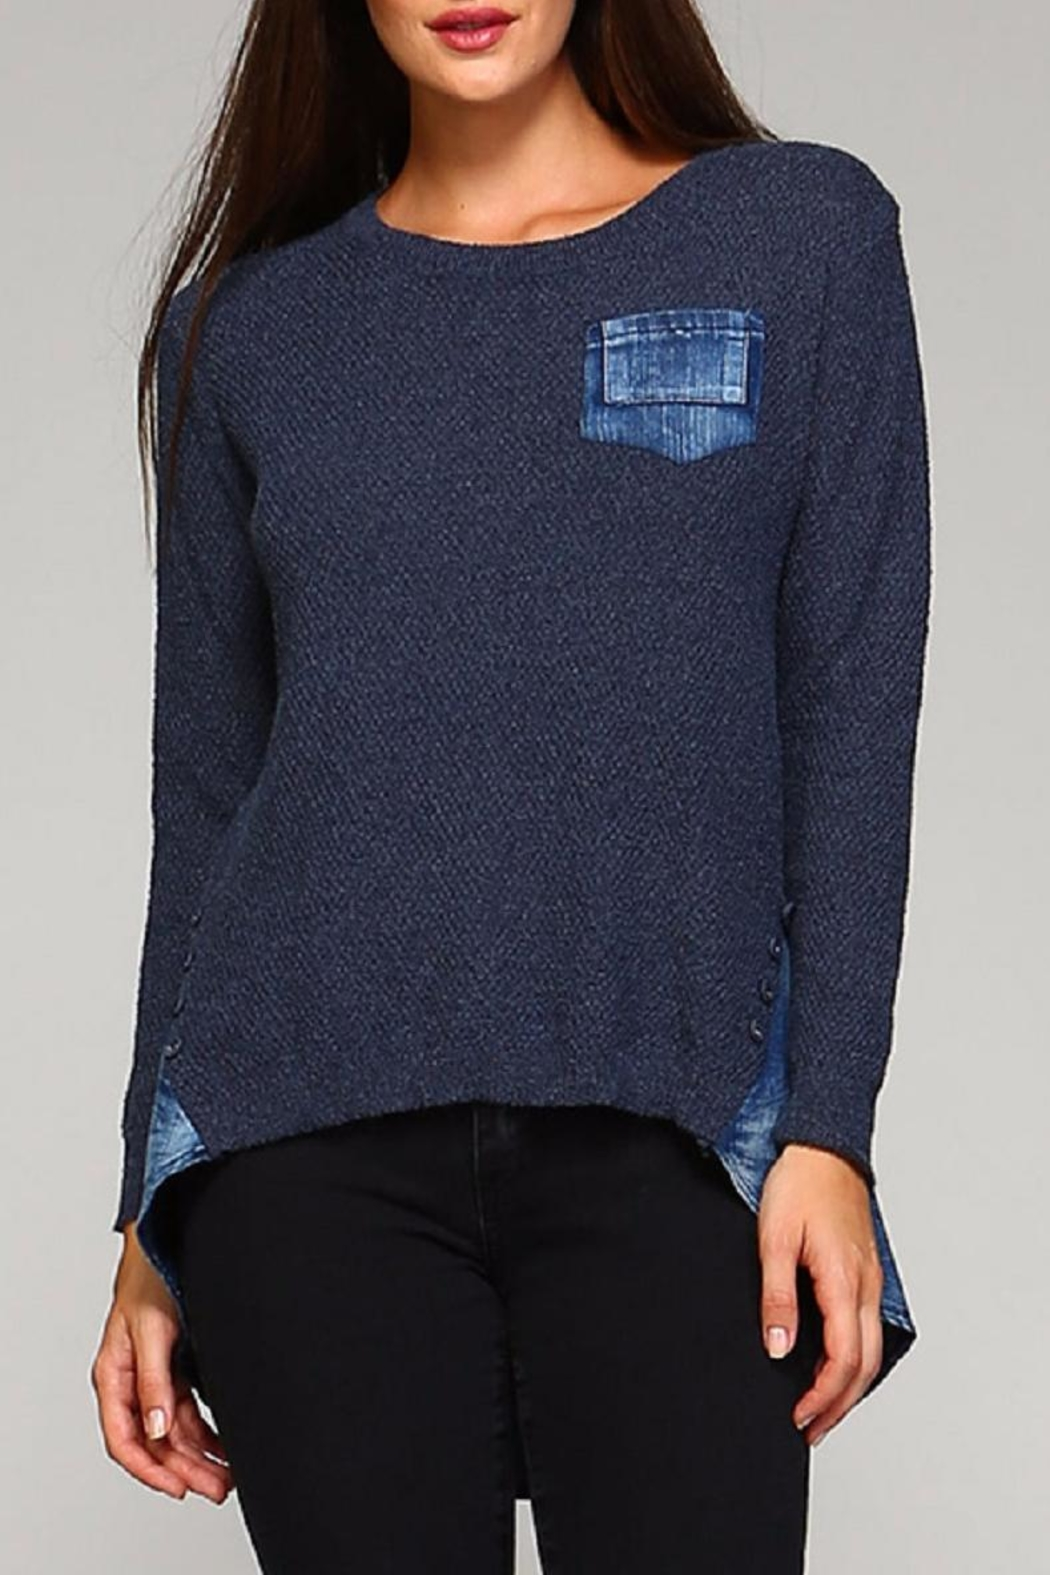 Selfie Couture Denim Blue Sweater - Main Image